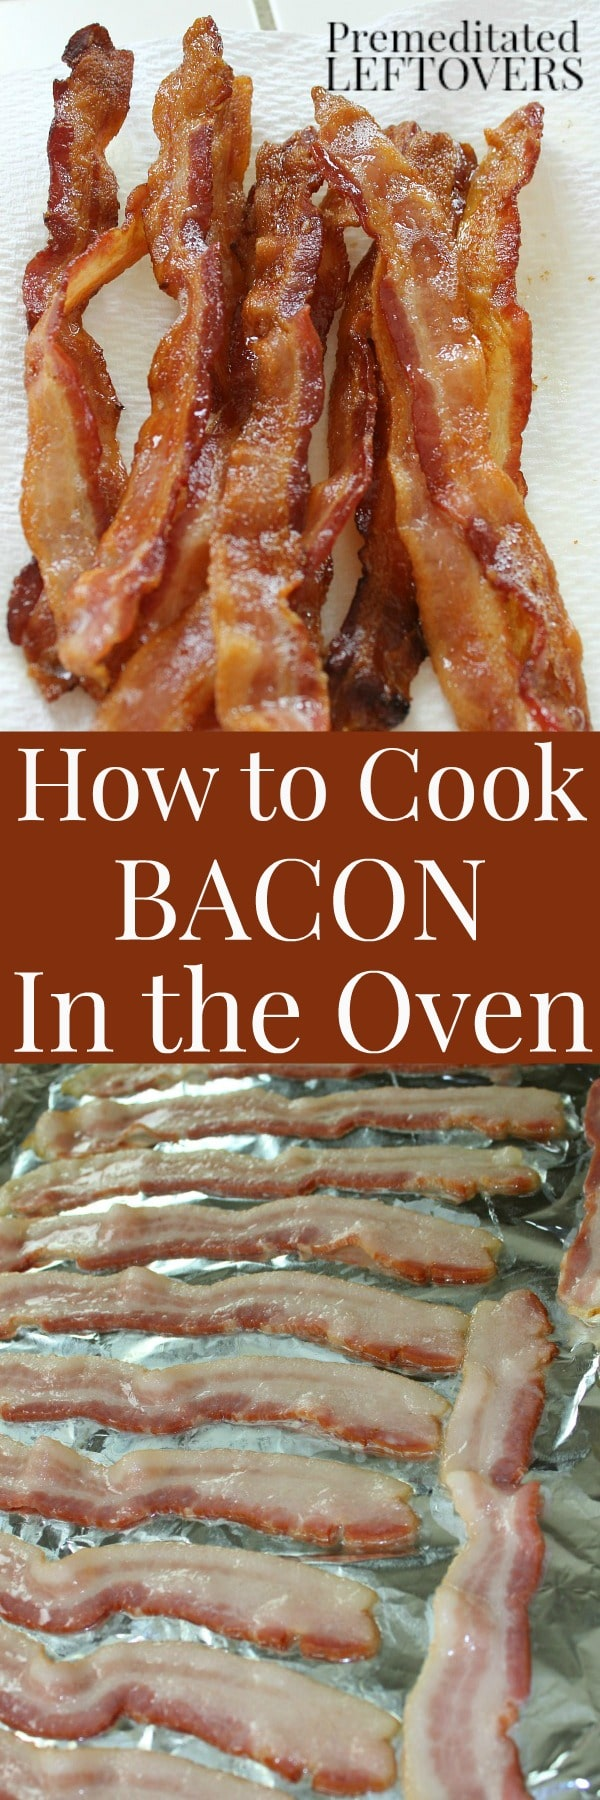 How To Cook Bacon In The Oven College Recipes College Recipes Share